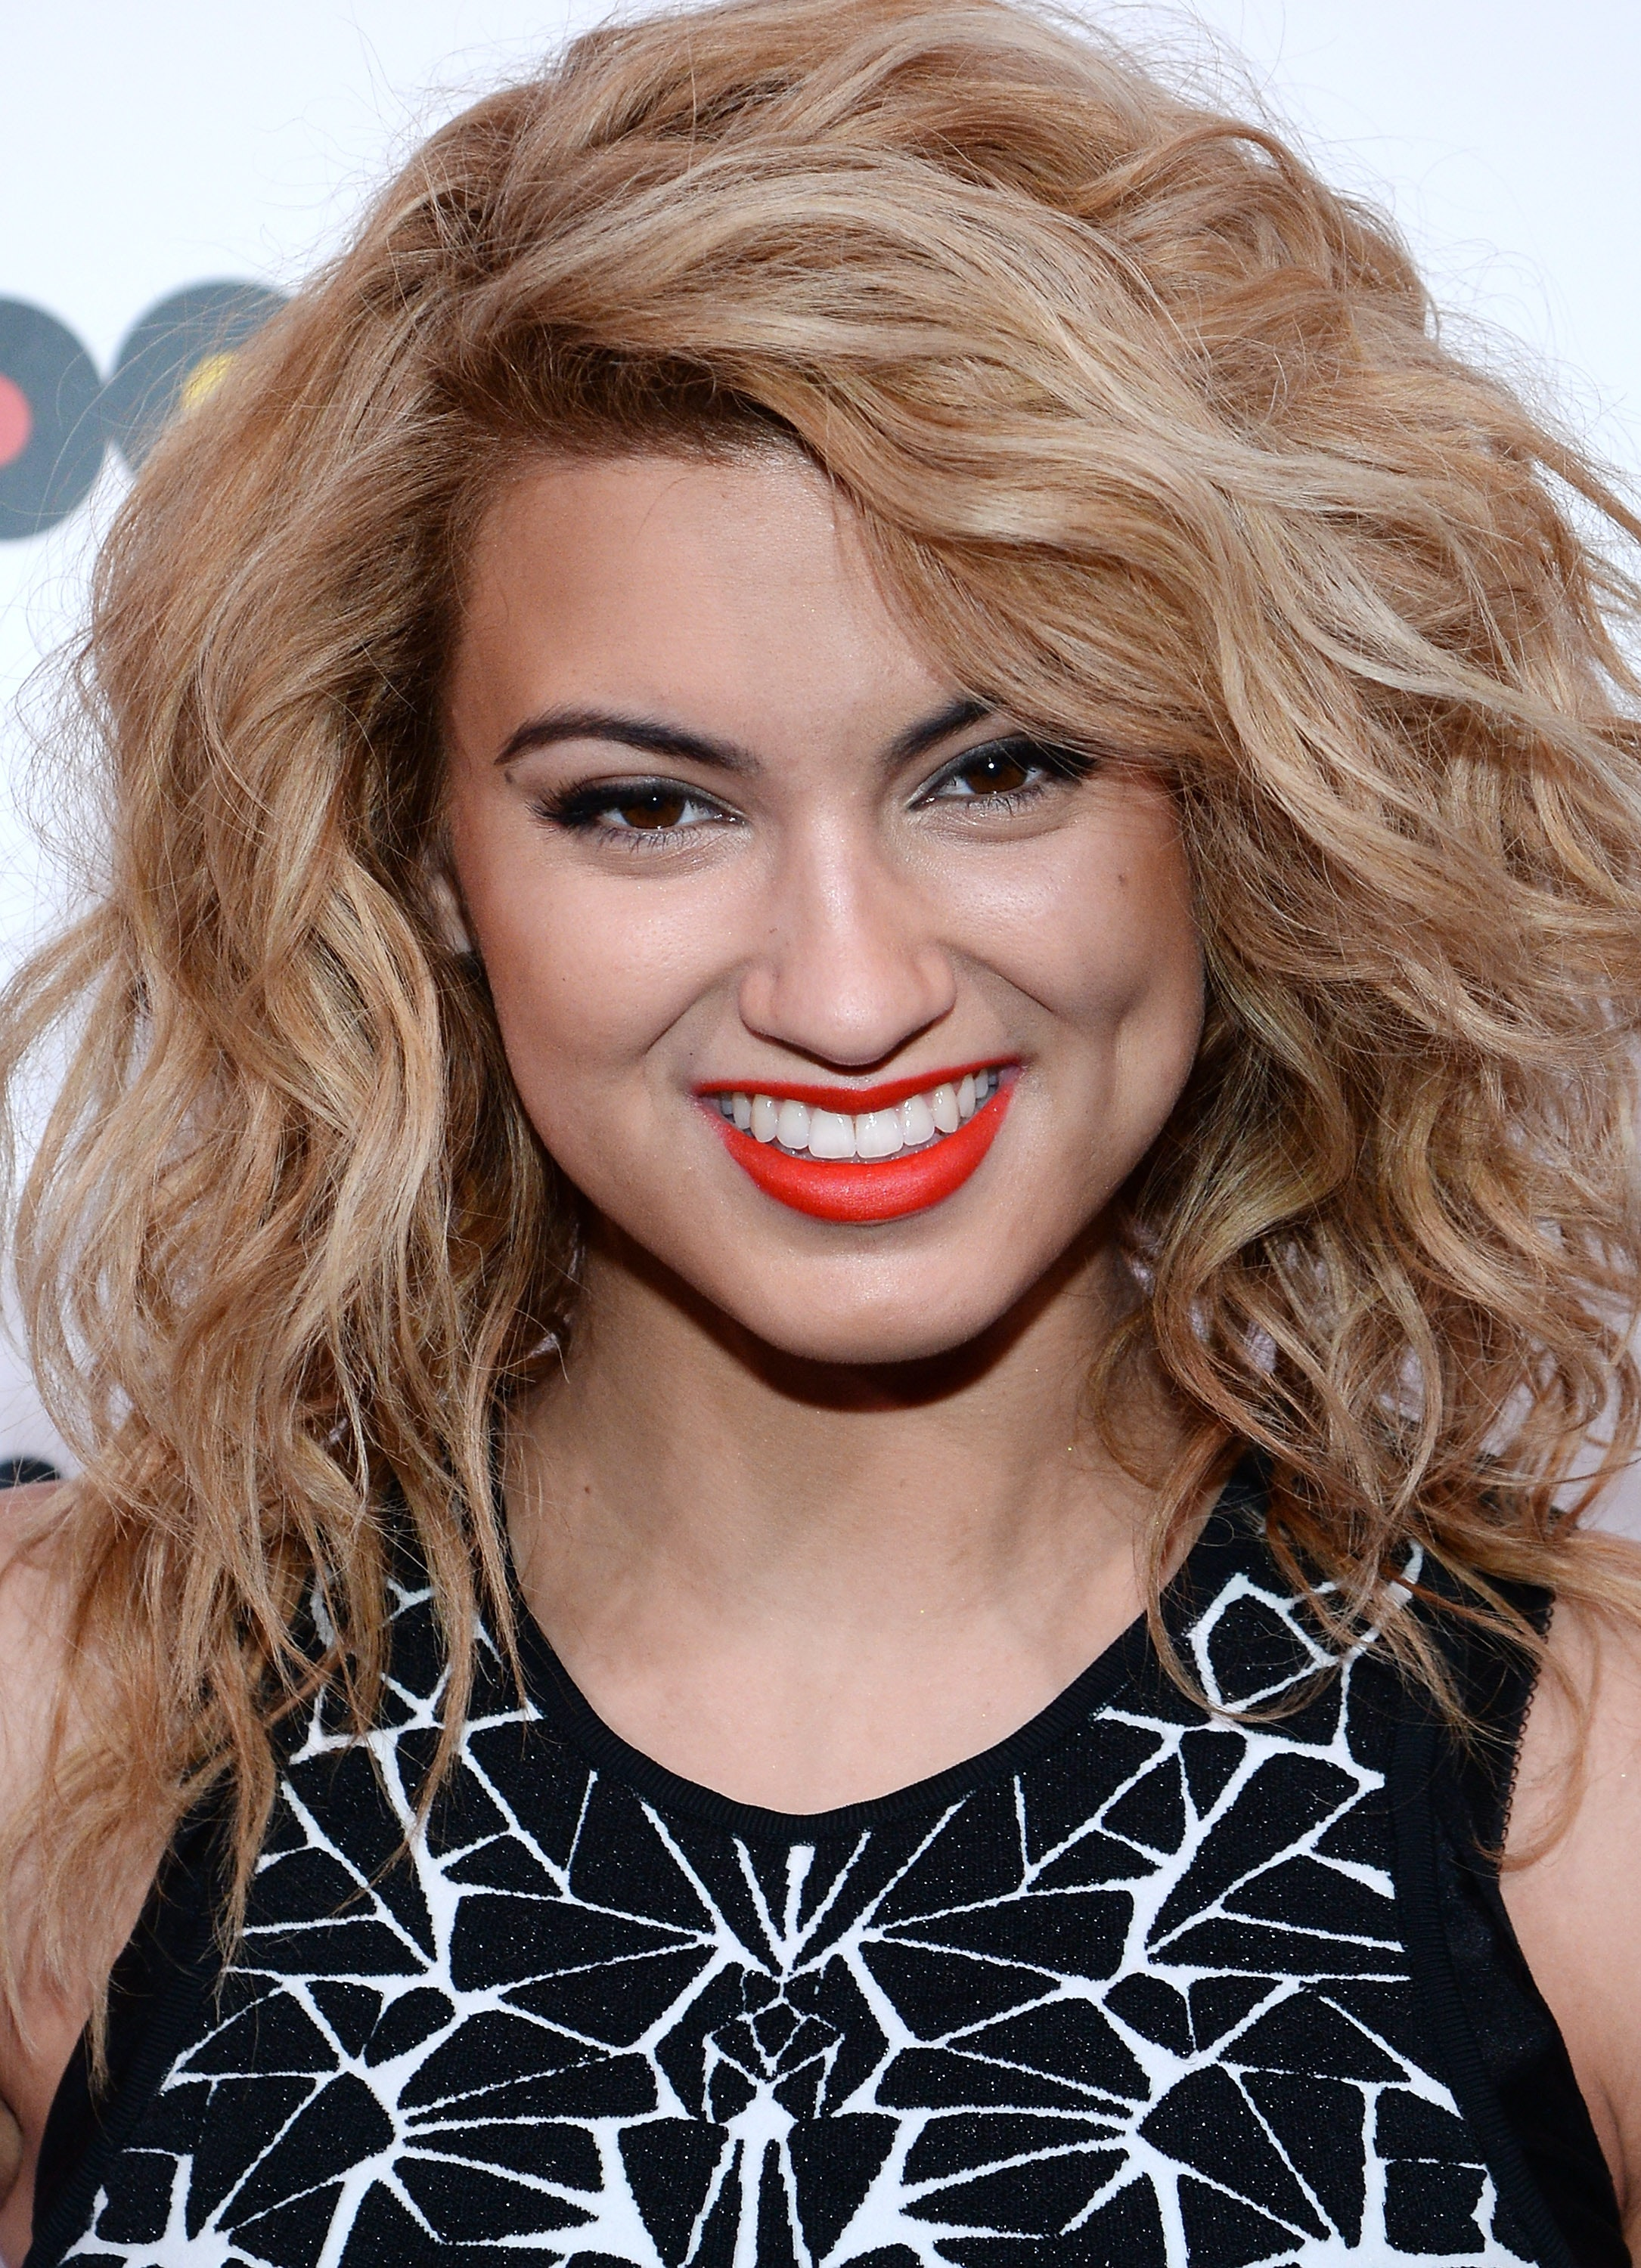 Tori Kelly Is Your New Fashion Icon Because Her Mix Of SoCal Cool